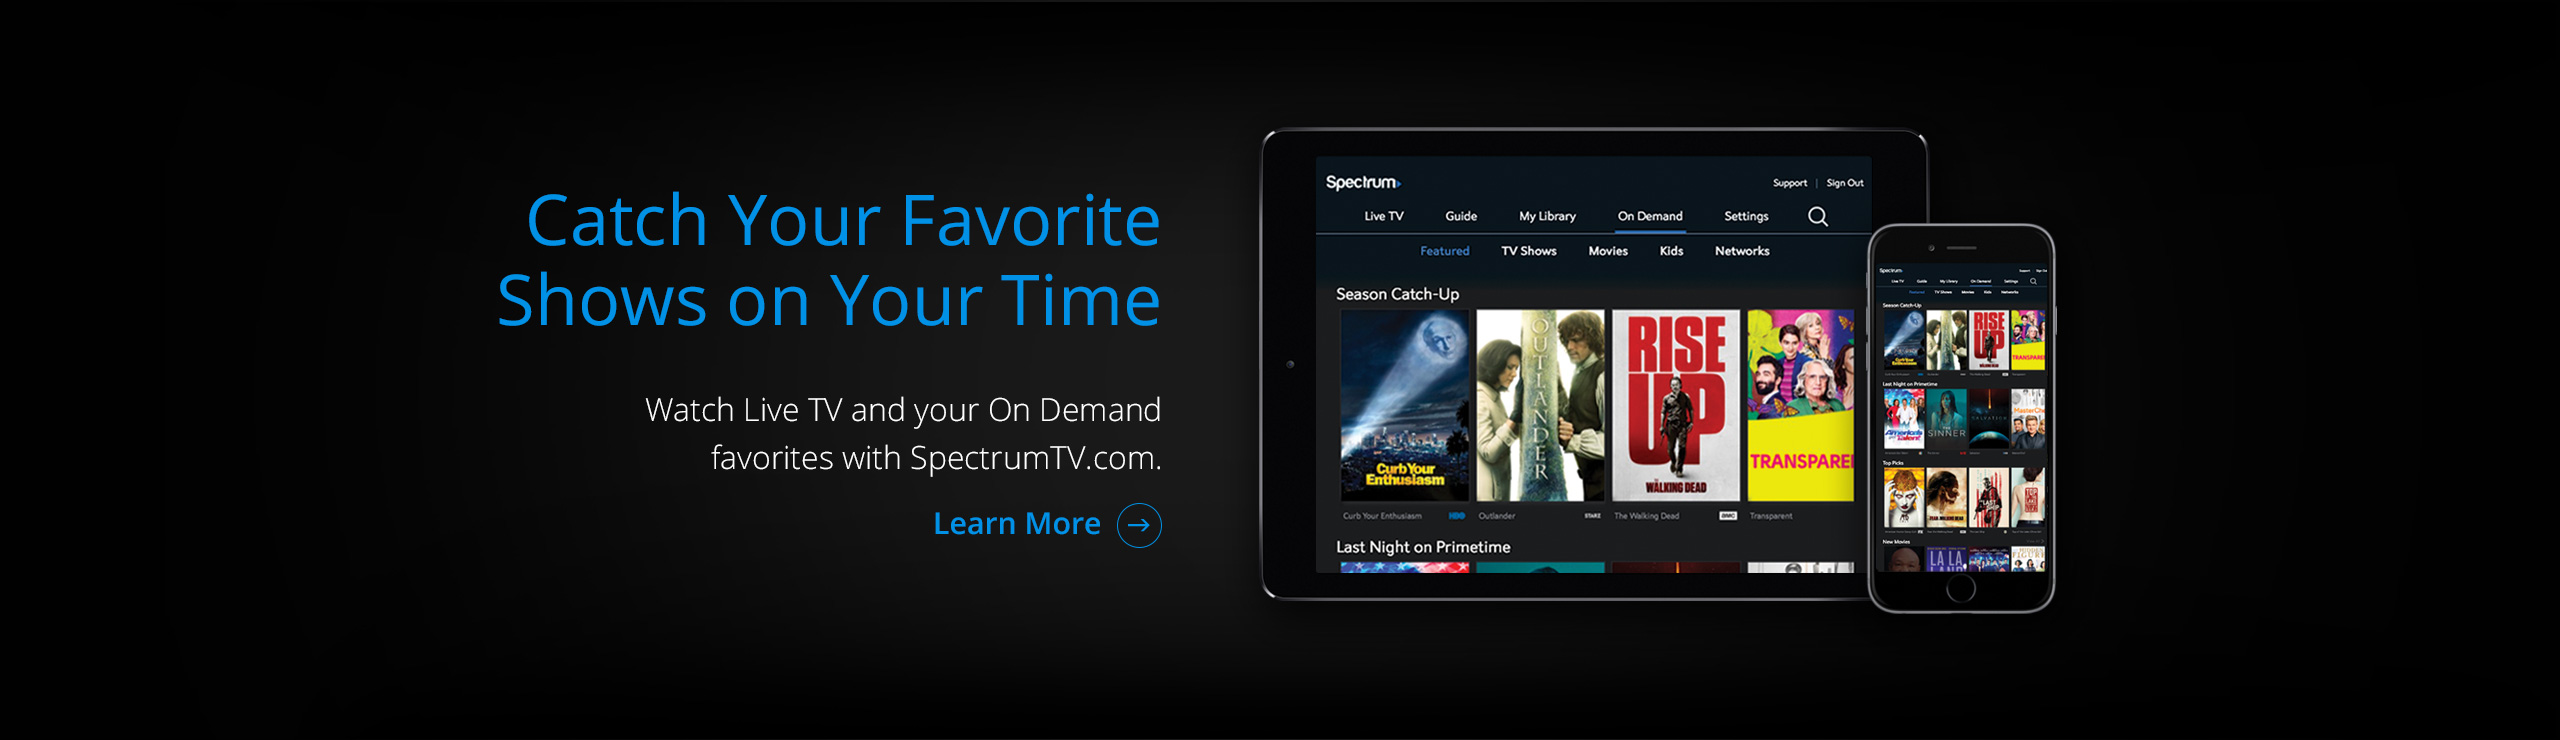 Catch Your Favorite Shows on Your Time! Click here!